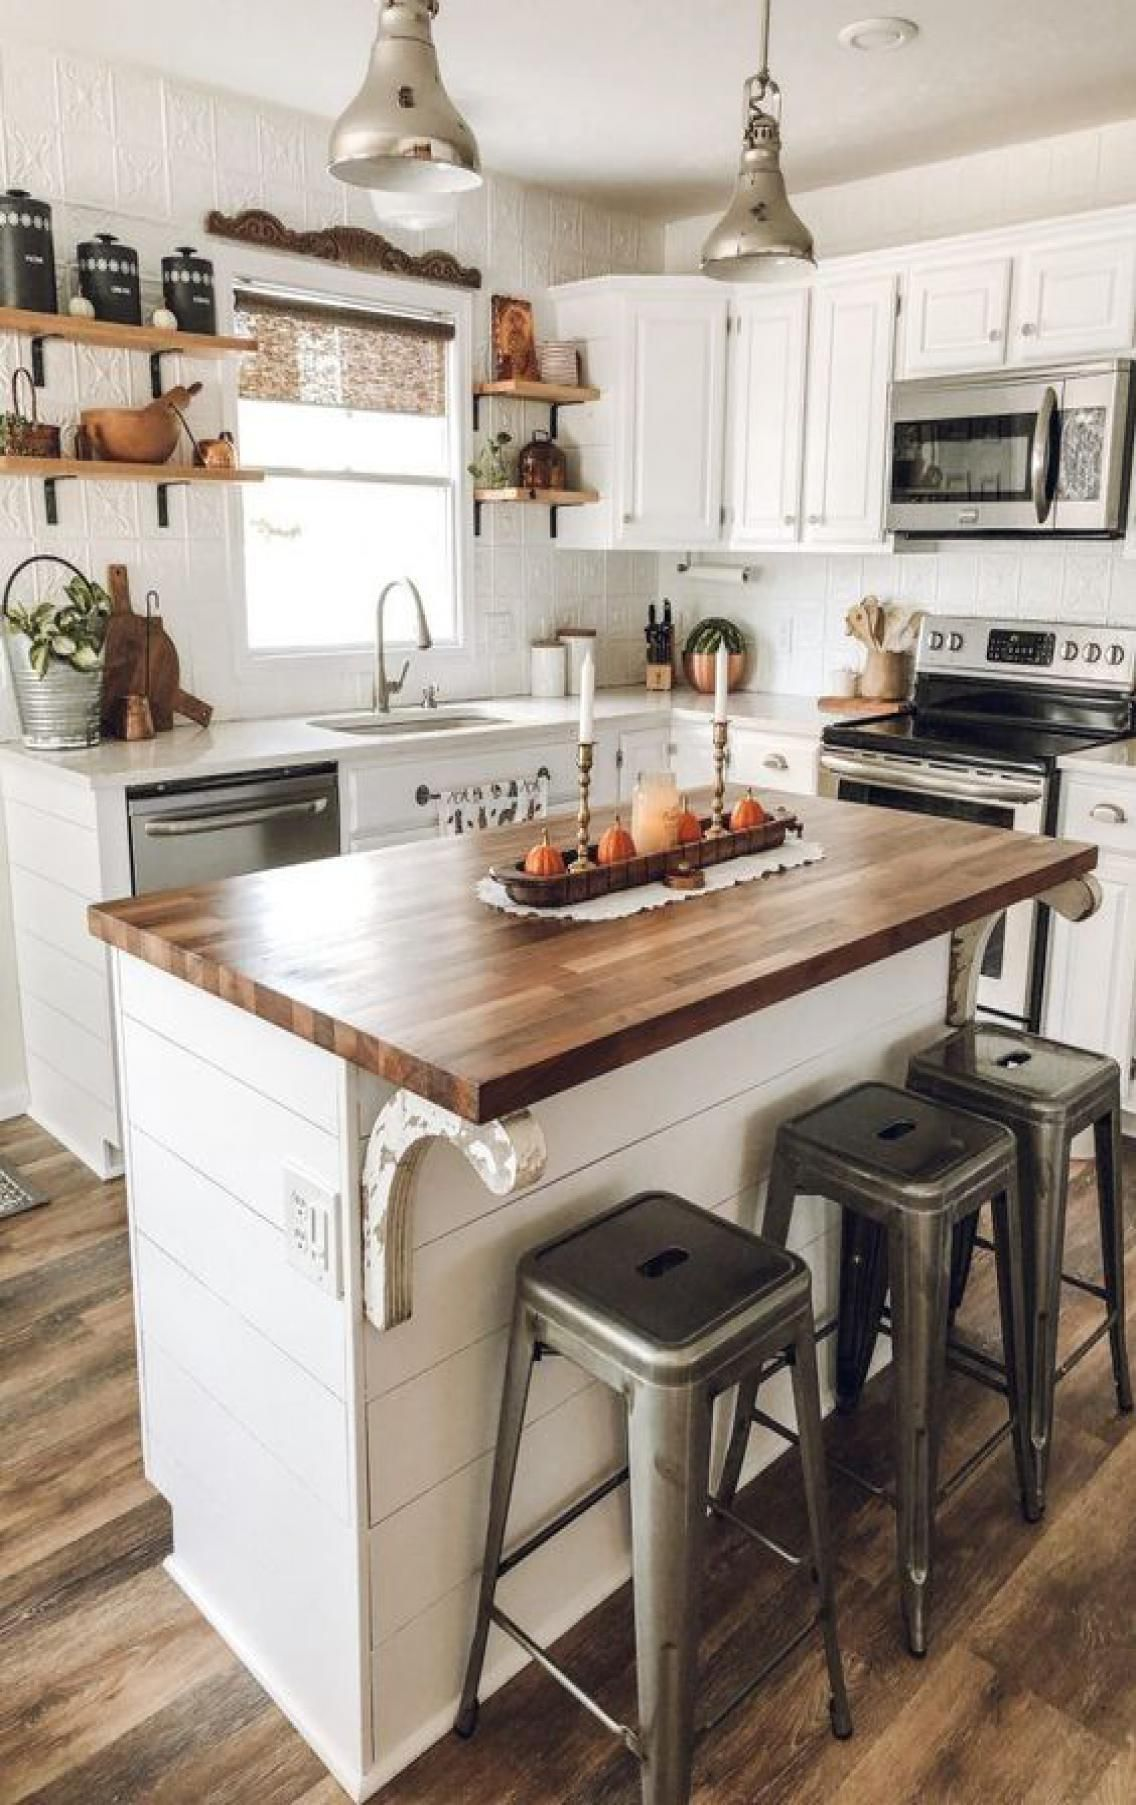 Ootd Food Design Soccer Architecture Doctor Beautyproducts Decor Design Livingroom Small Cottage Kitchen Kitchen Design Small Kitchen Island Design